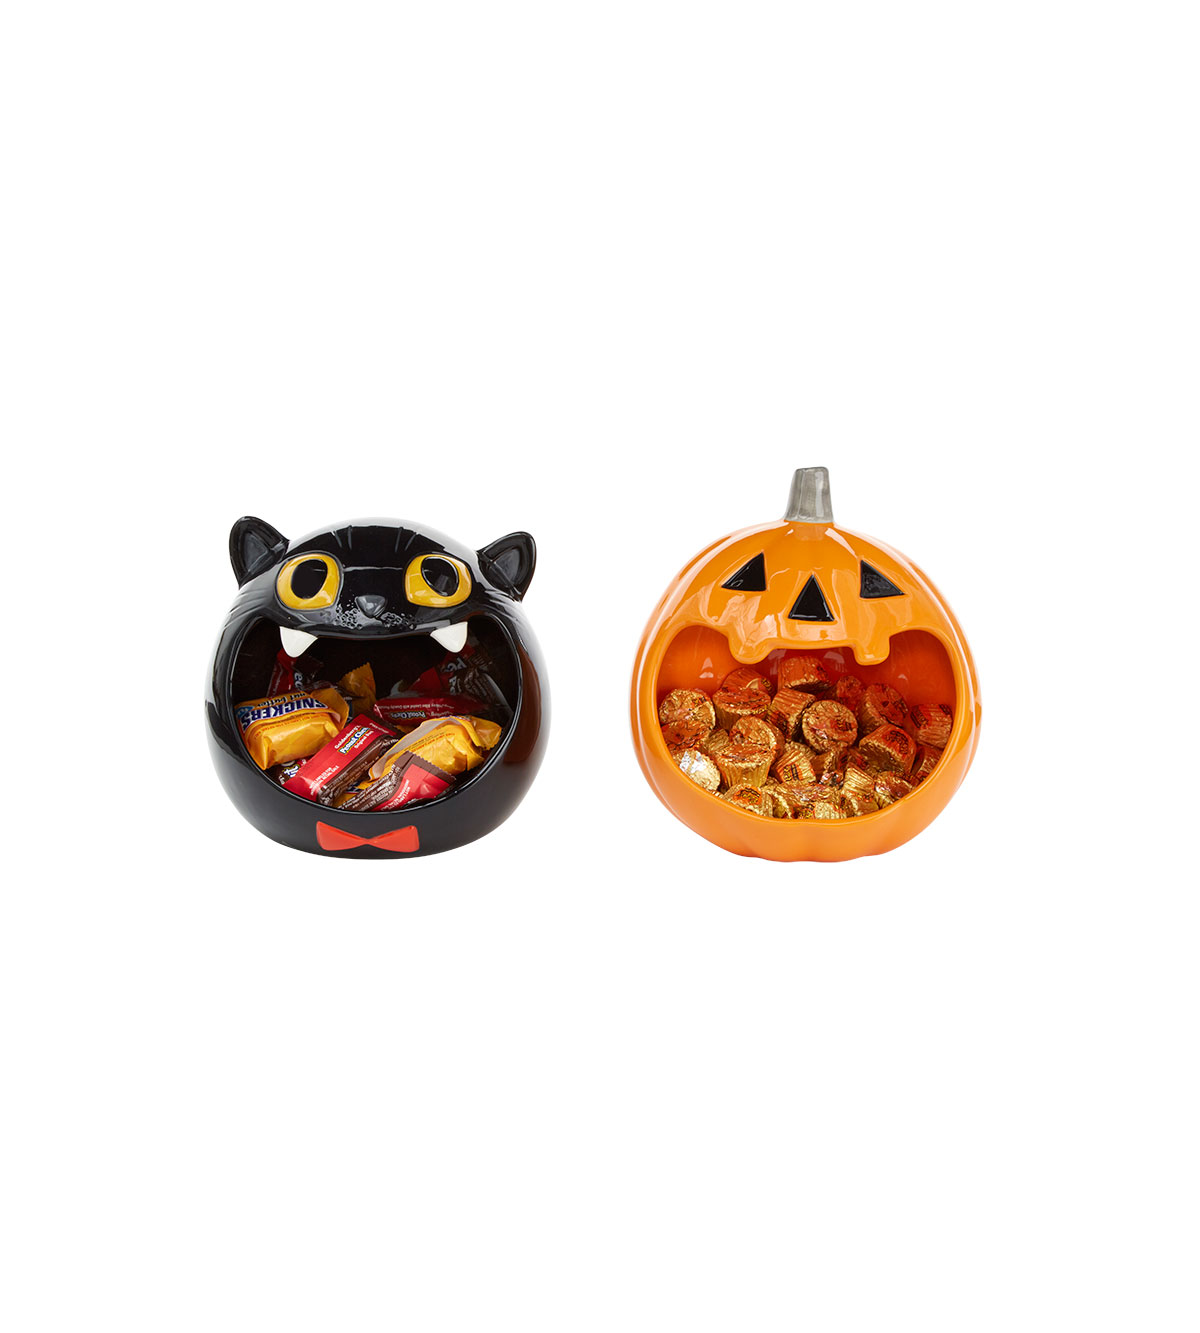 Ceramic Black Cat and Pumpkin Candy Bowls